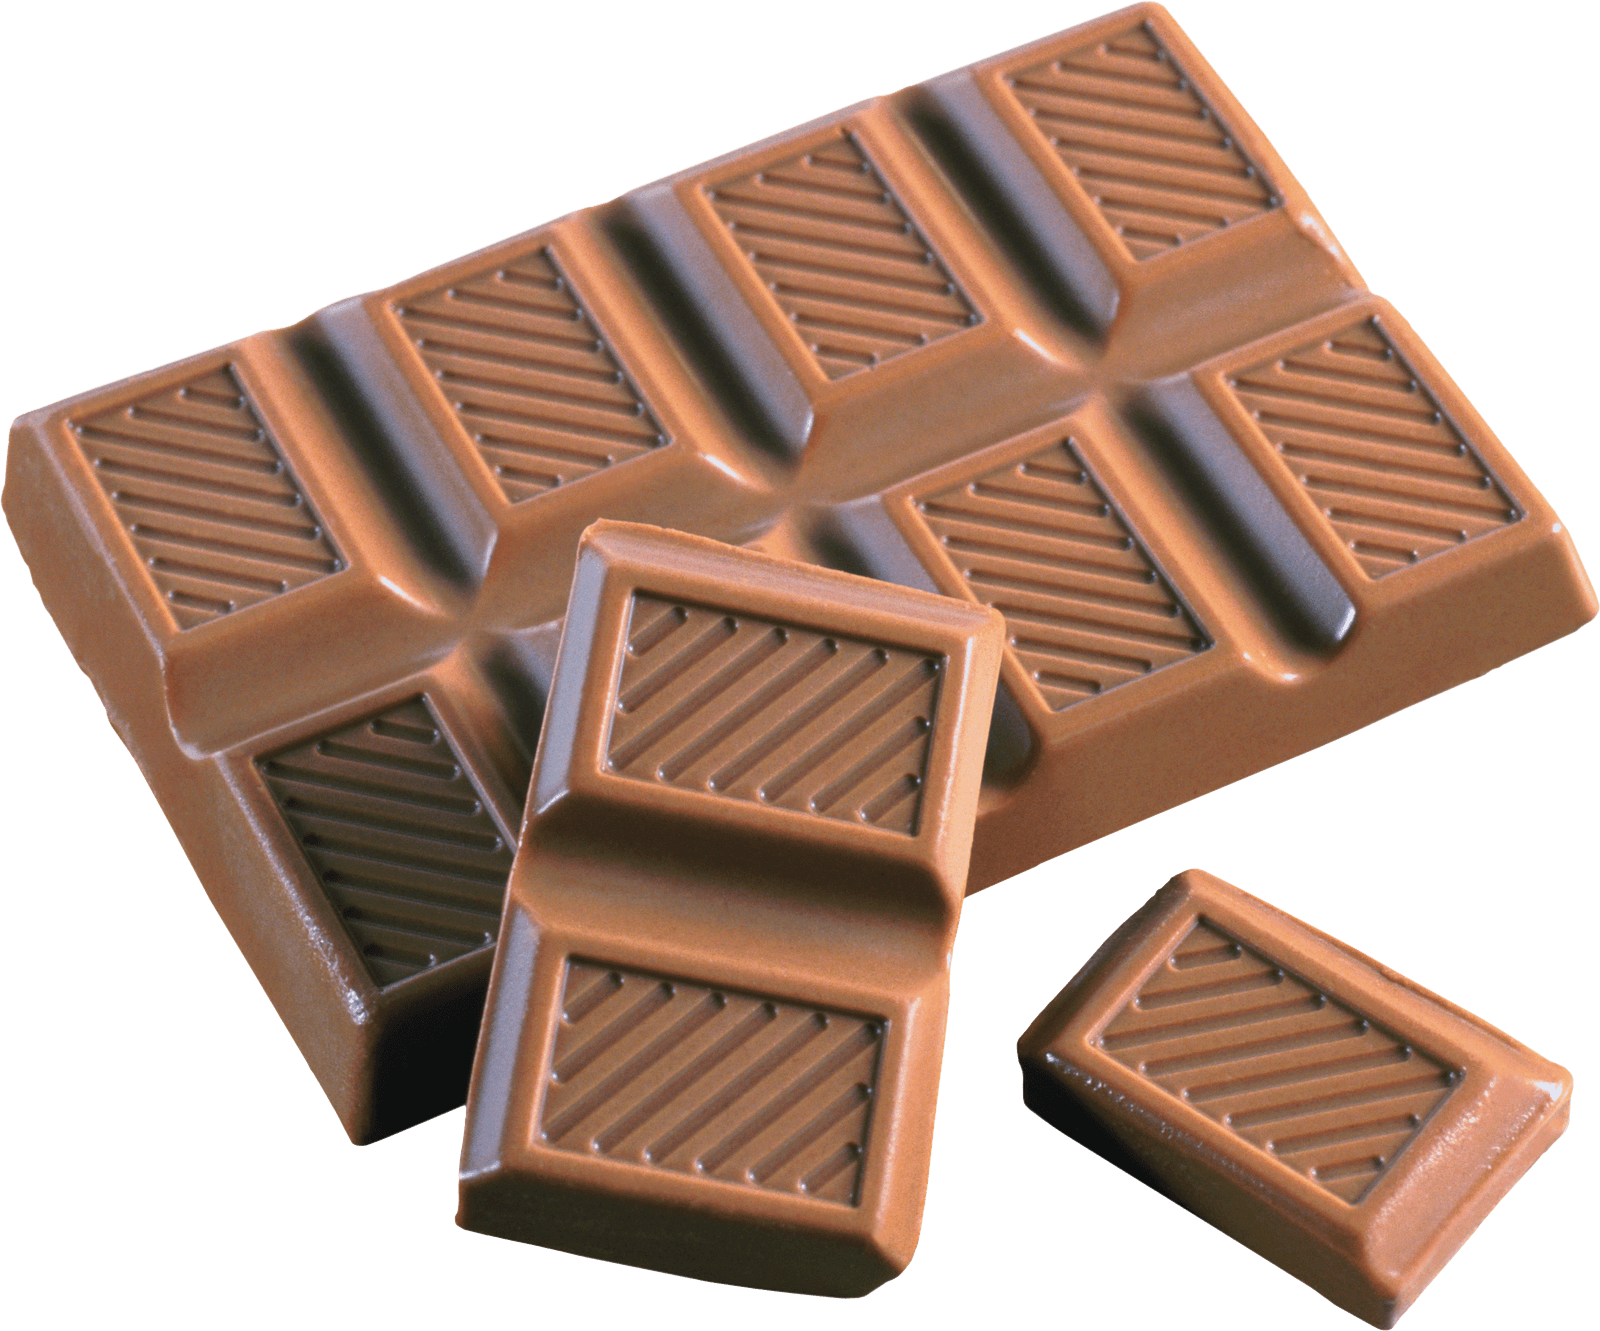 jpg free stock Chunks tablet png stickpng. Chocolate transparent